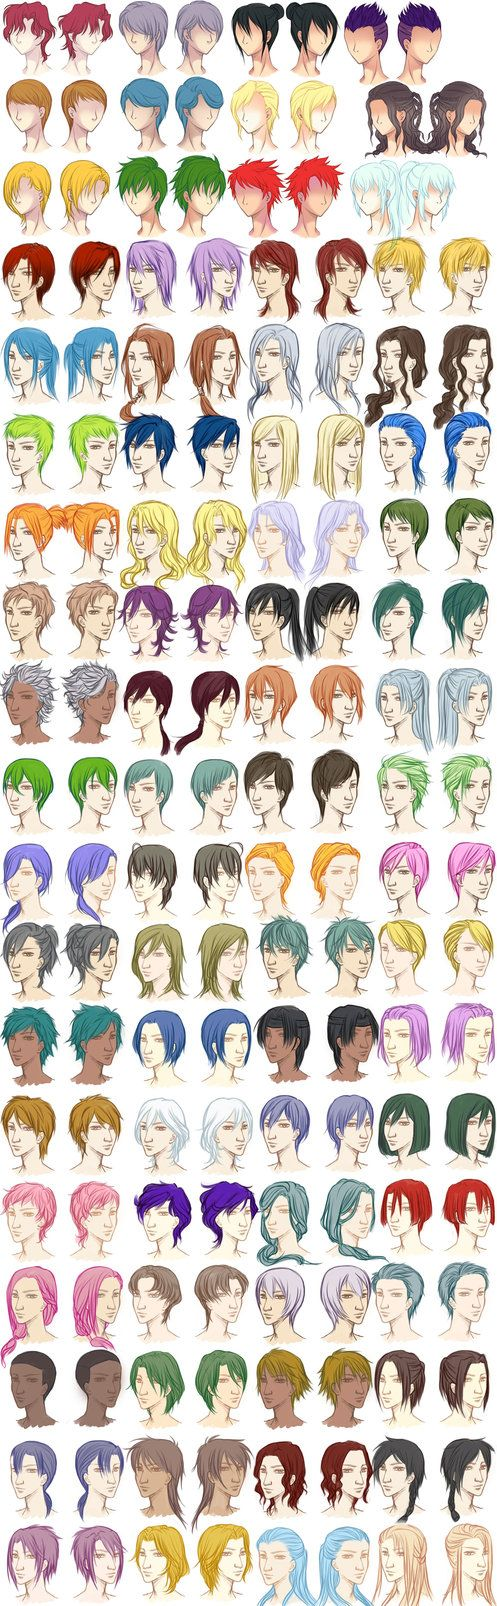 Male hairstyle reference sheet by dawniechi on deviantart desenhos